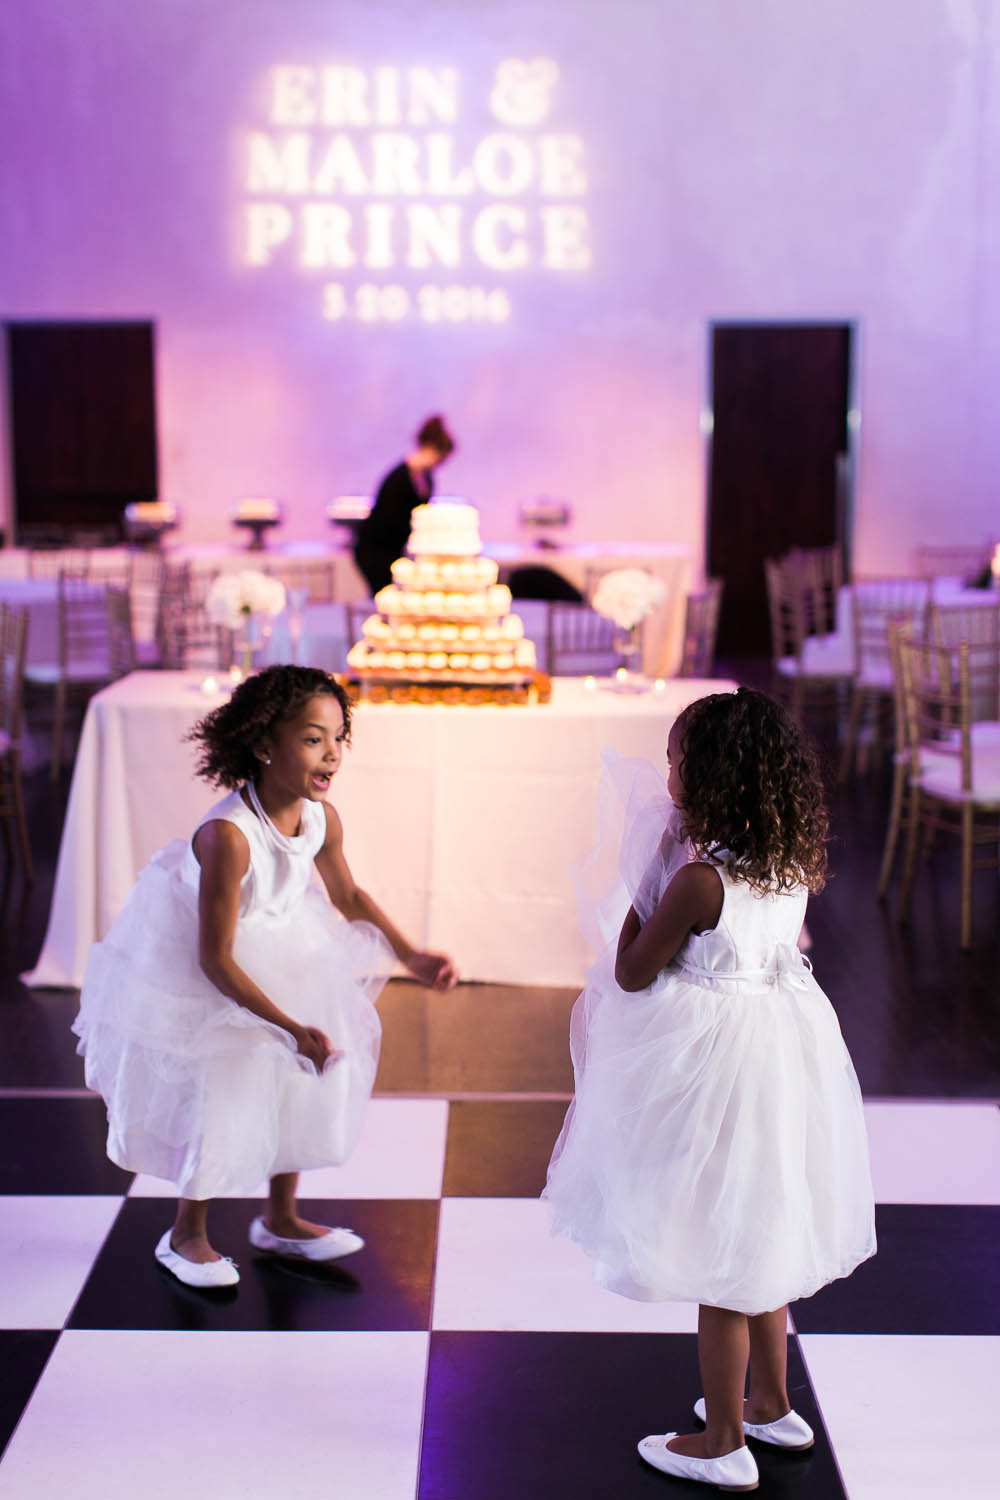 nashville ruby film documentary wedding photographer heartfelt real moments african american wedding munalachi bride ©2016abigailbobophotography-40.jpg